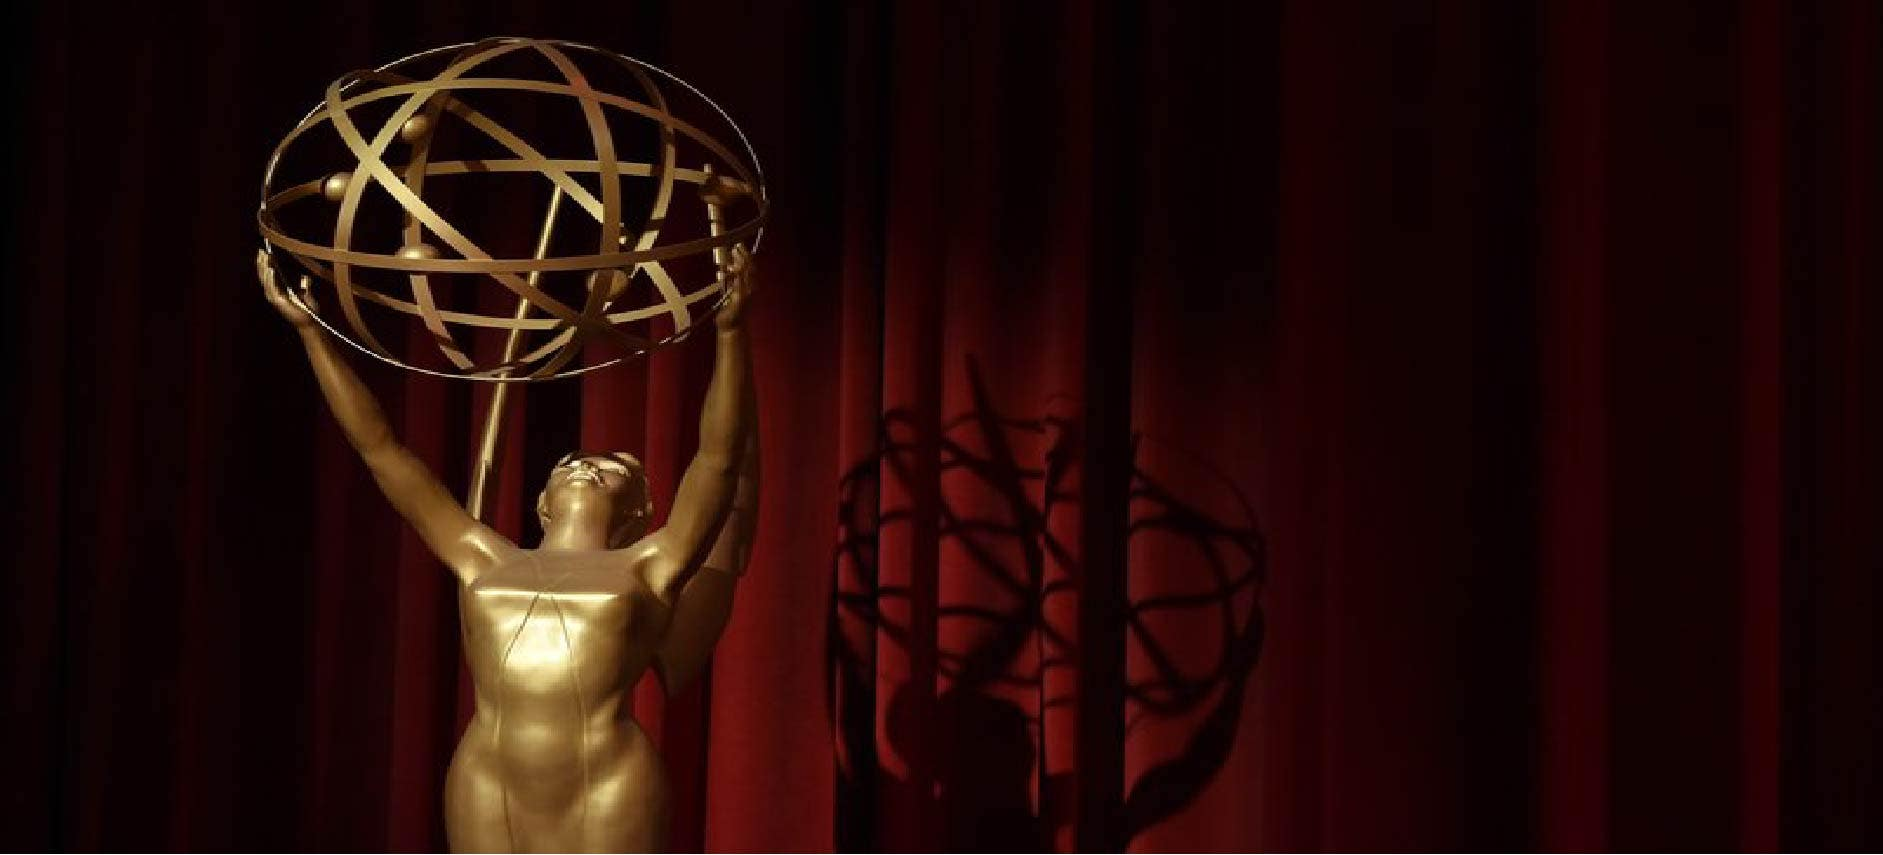 Emmy show will include $2.8M donation to fight child hunger – Fox Business